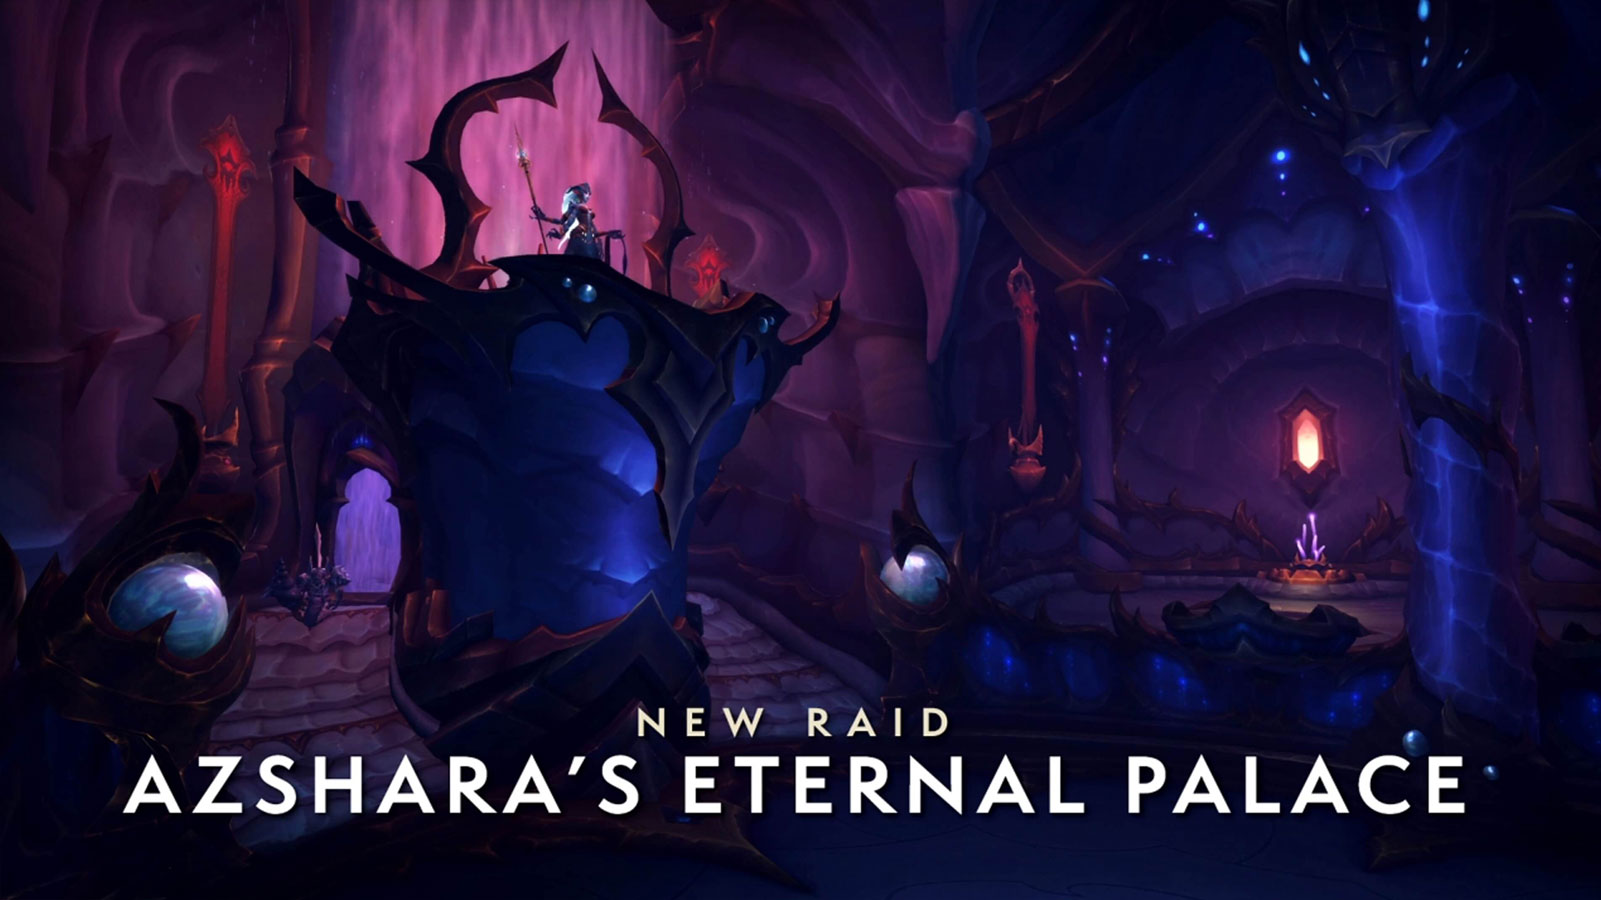 Justwait's 8 2: Rise of Azshara Sneak Peak - News - Method